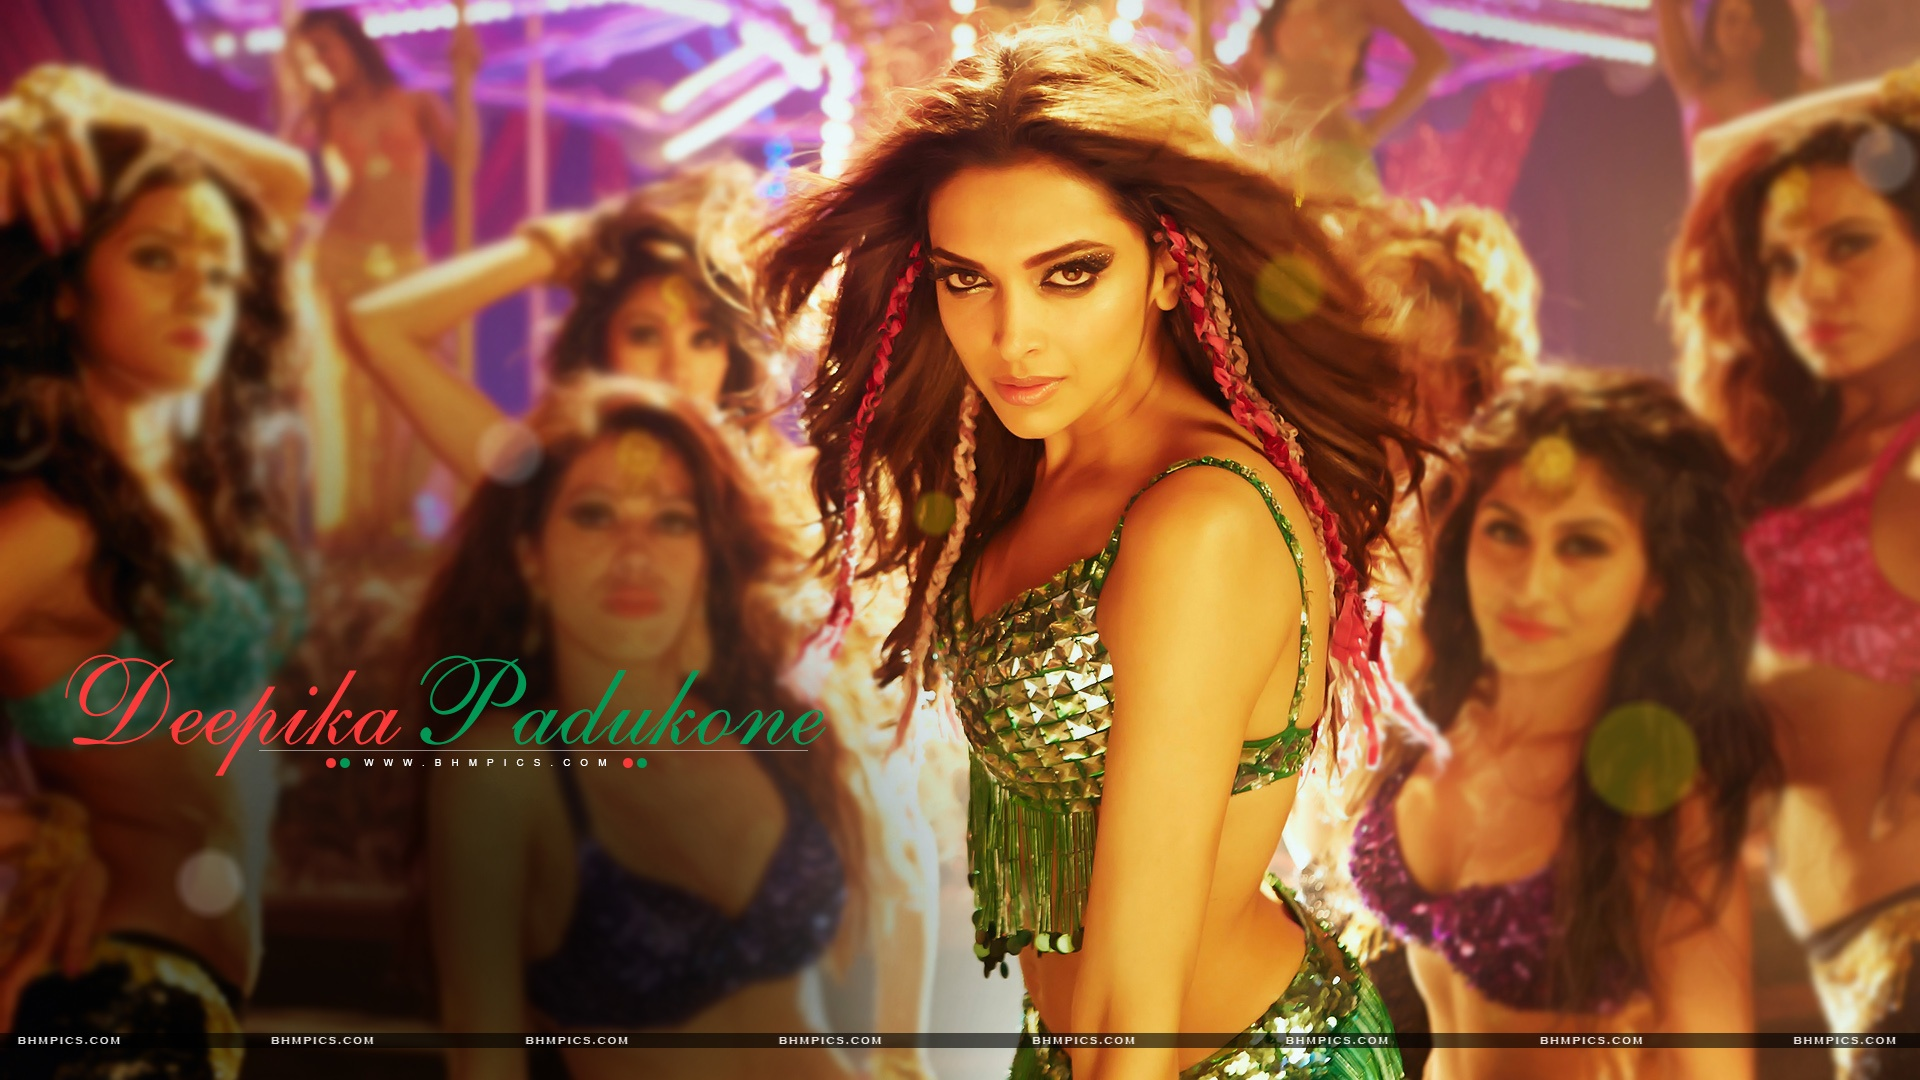 Deepika Padukone As Mohini